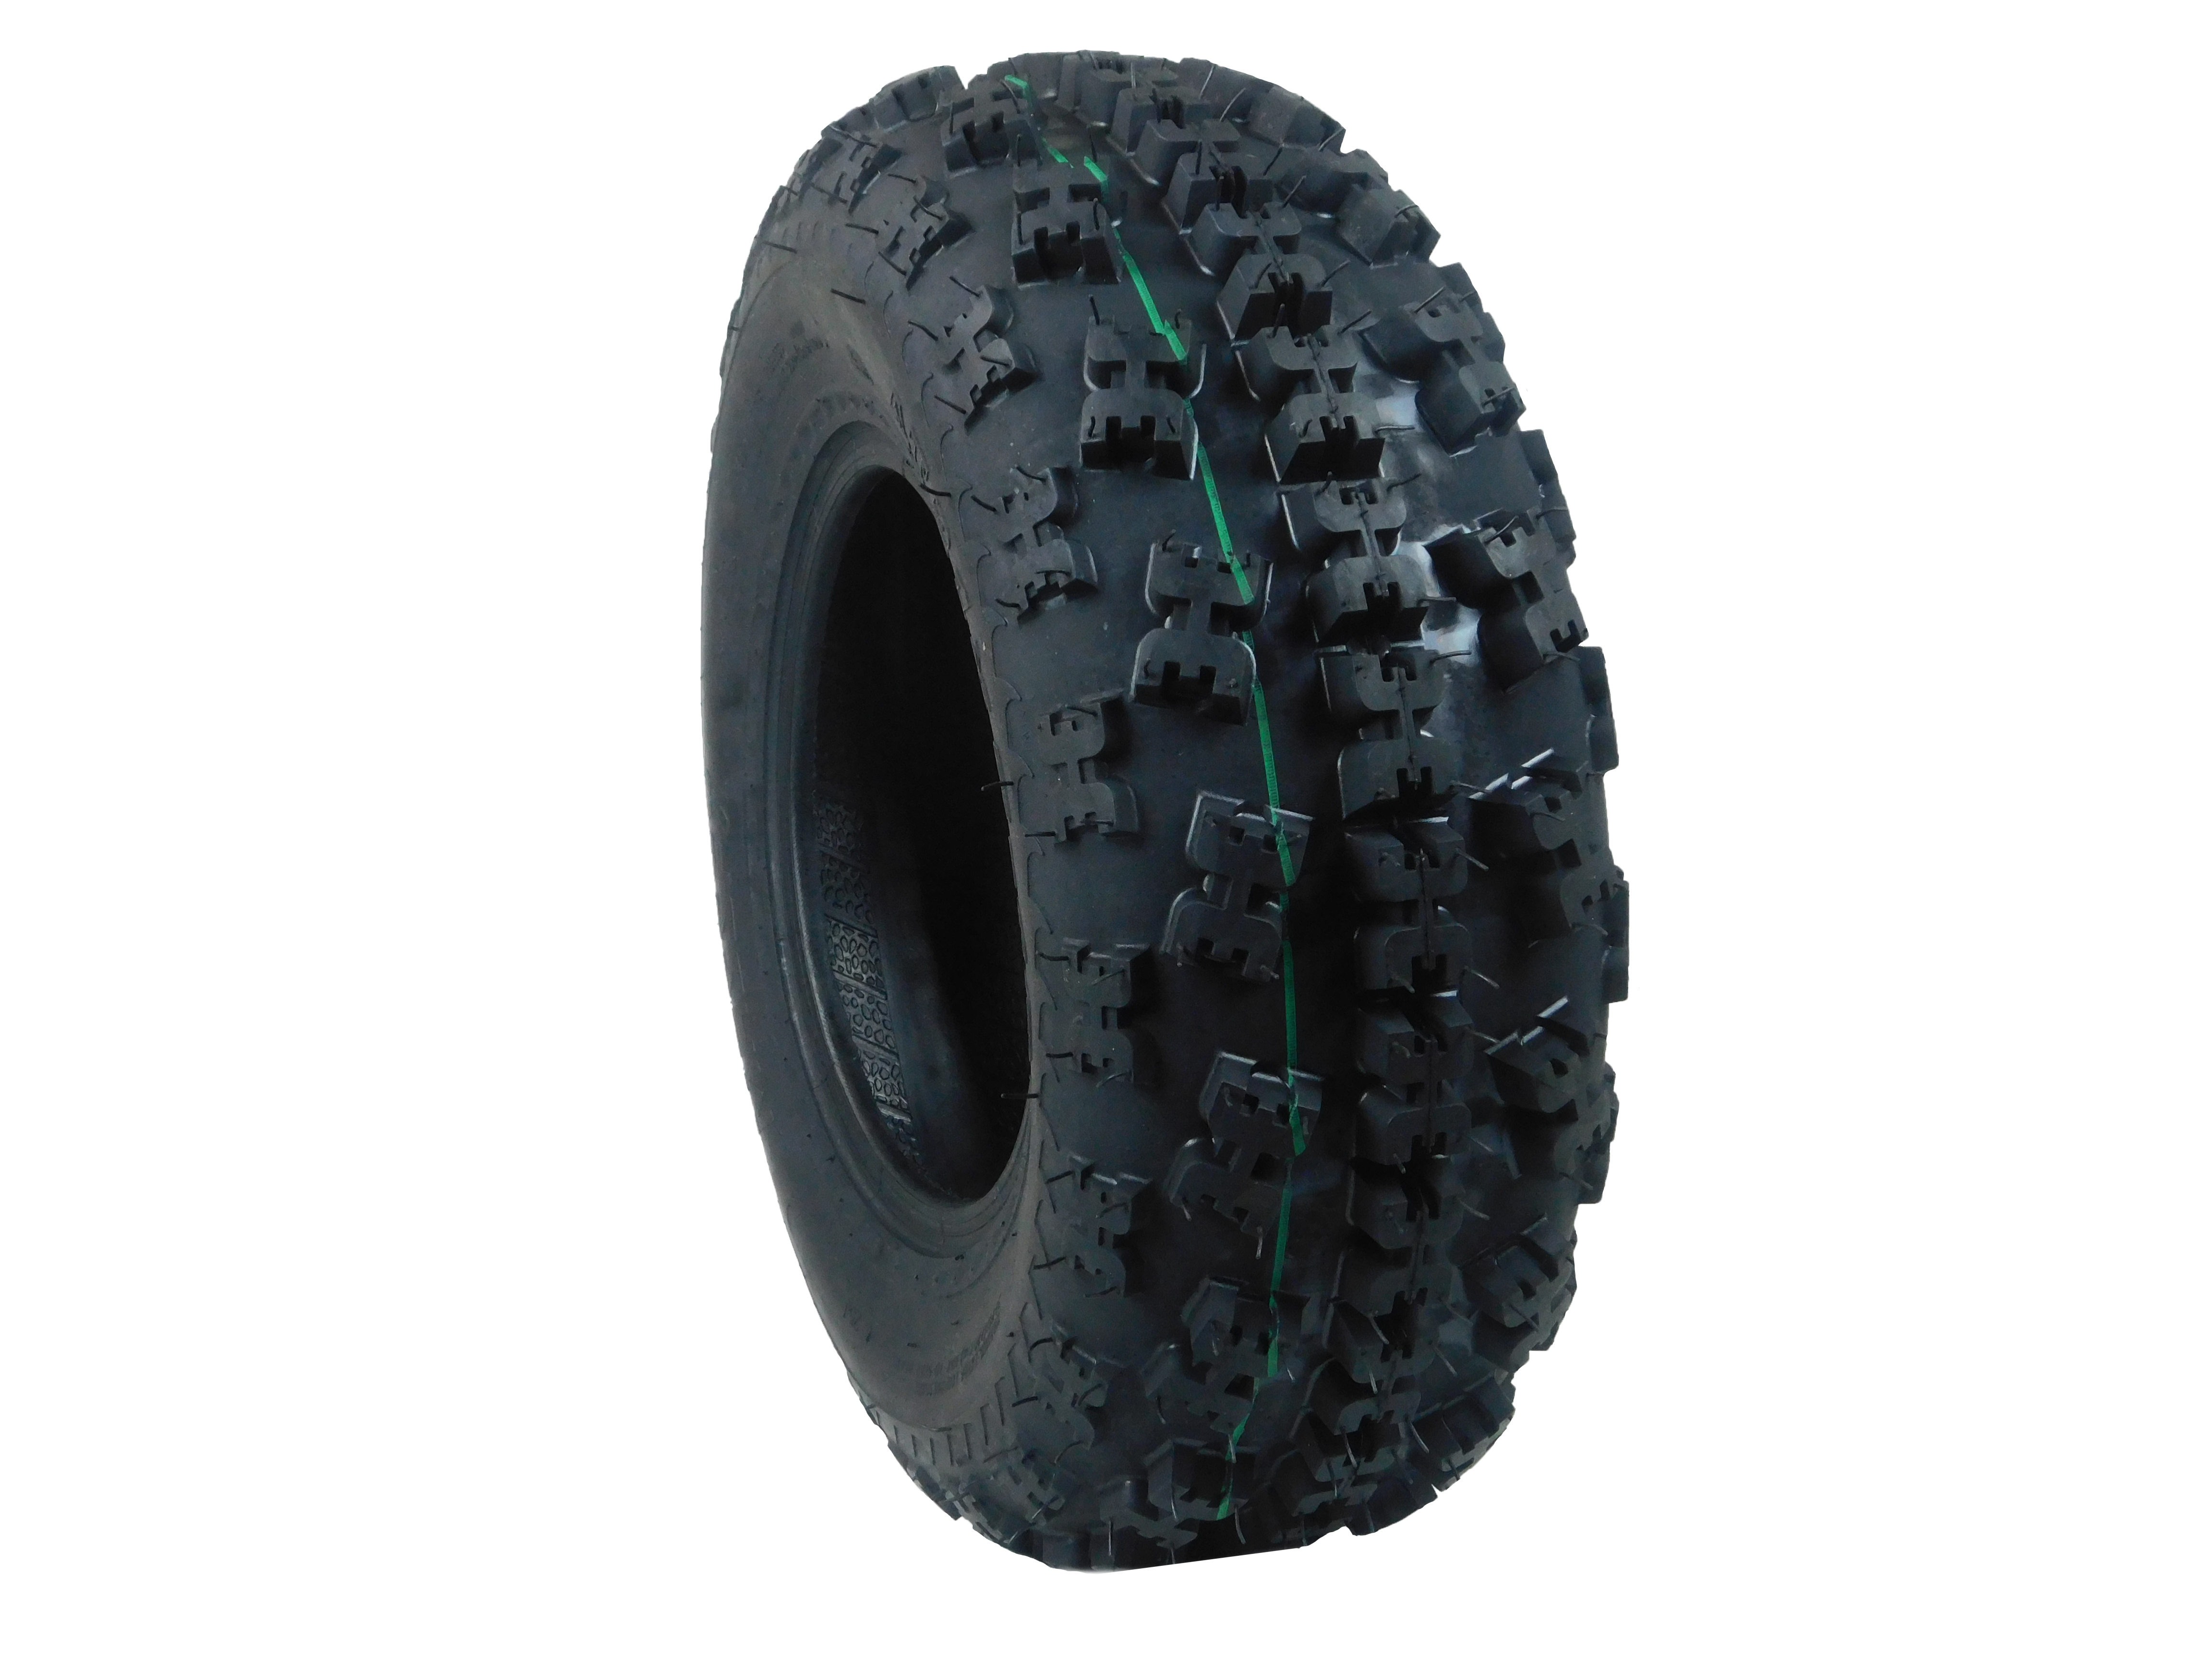 MASSFX-ATV-Single-Tire-21x7-10-Front-4Ply-image-1